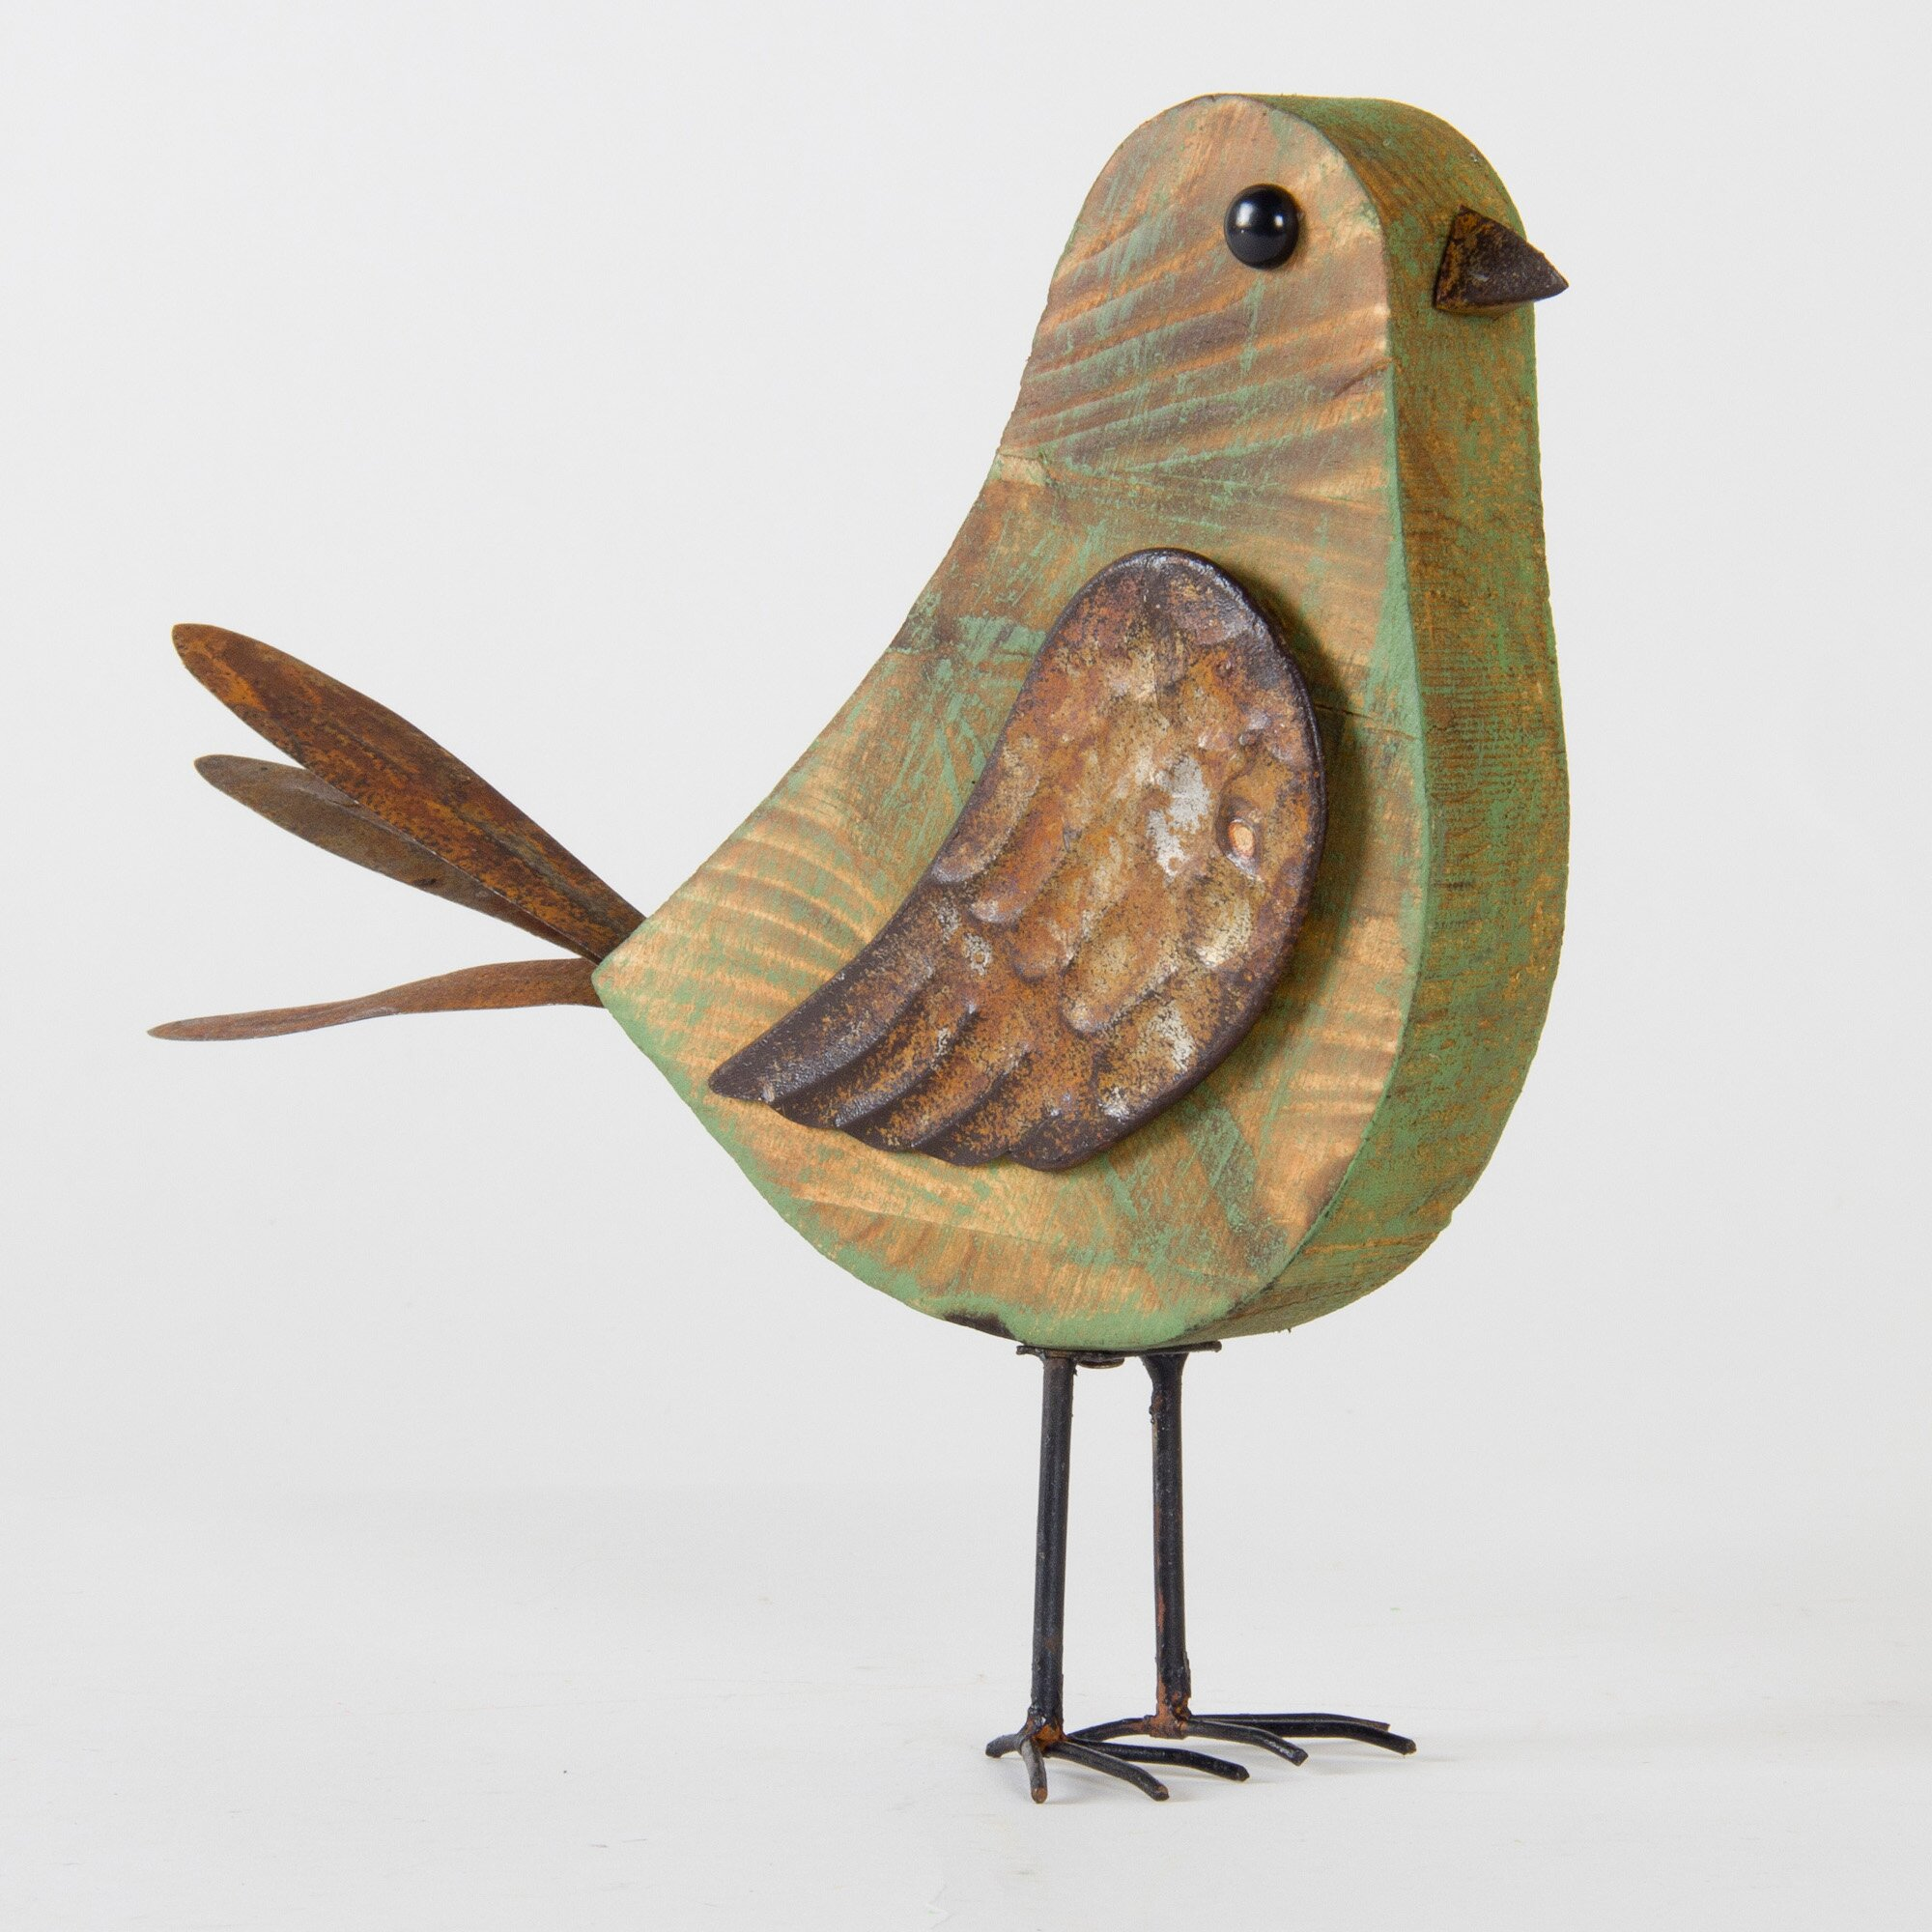 Glitzhome iron wooden outdoor decorative bird statue for Decorative birds for outside